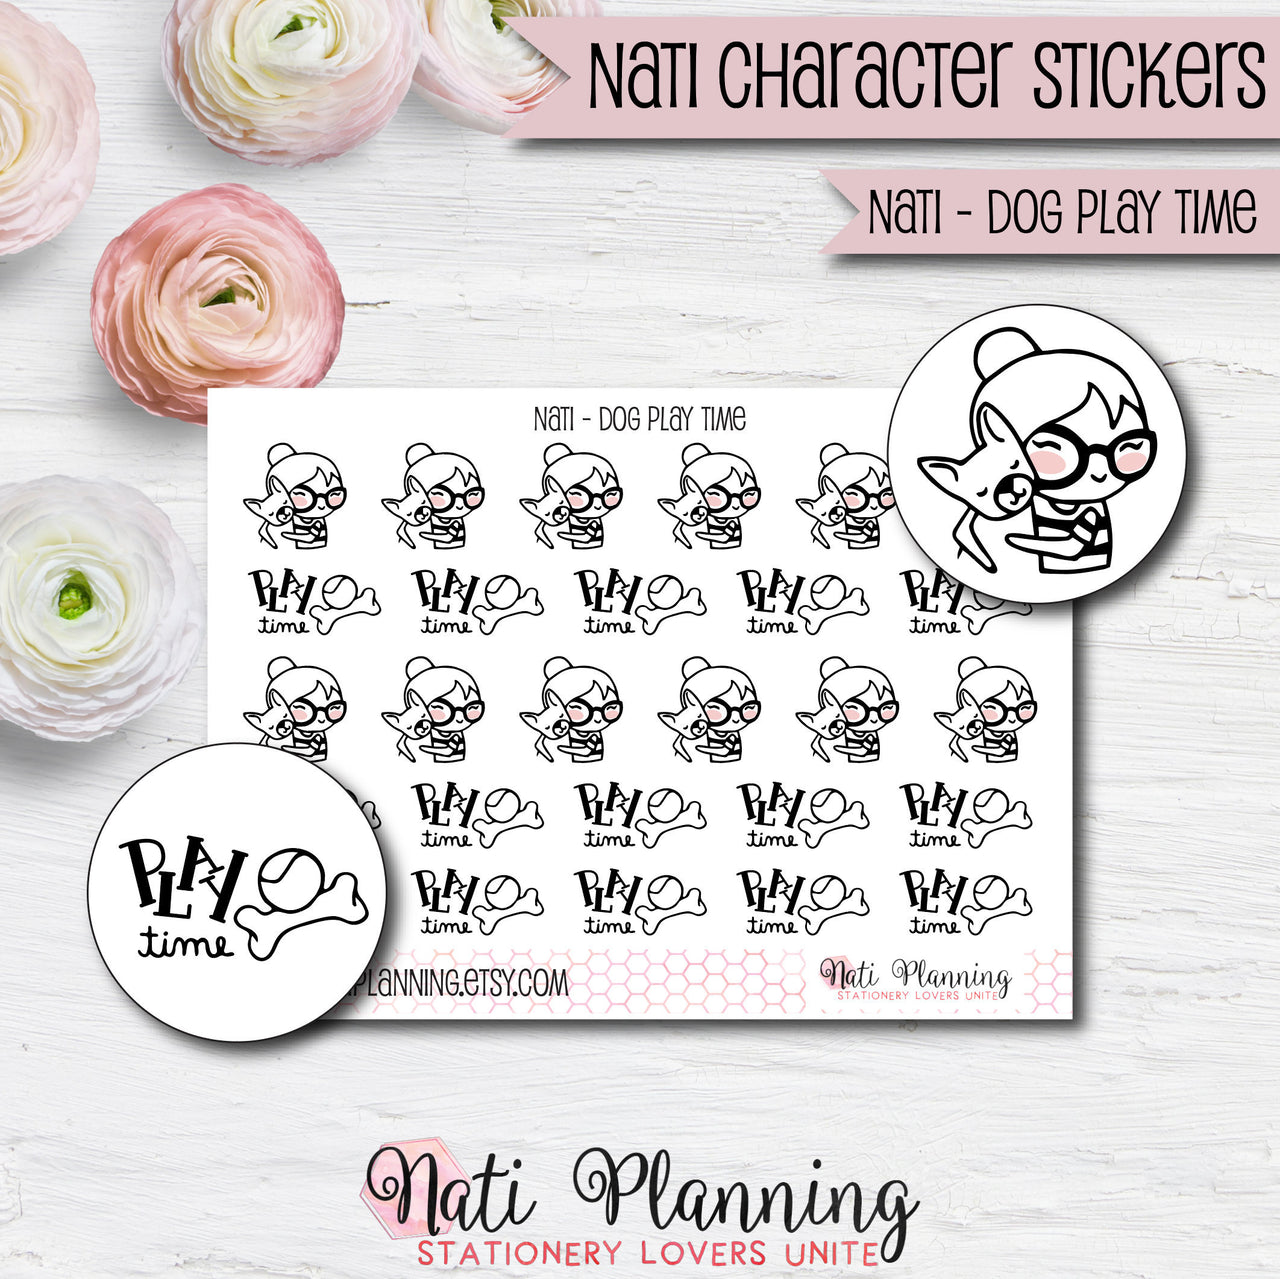 Nati - Dog Play Time Stickers